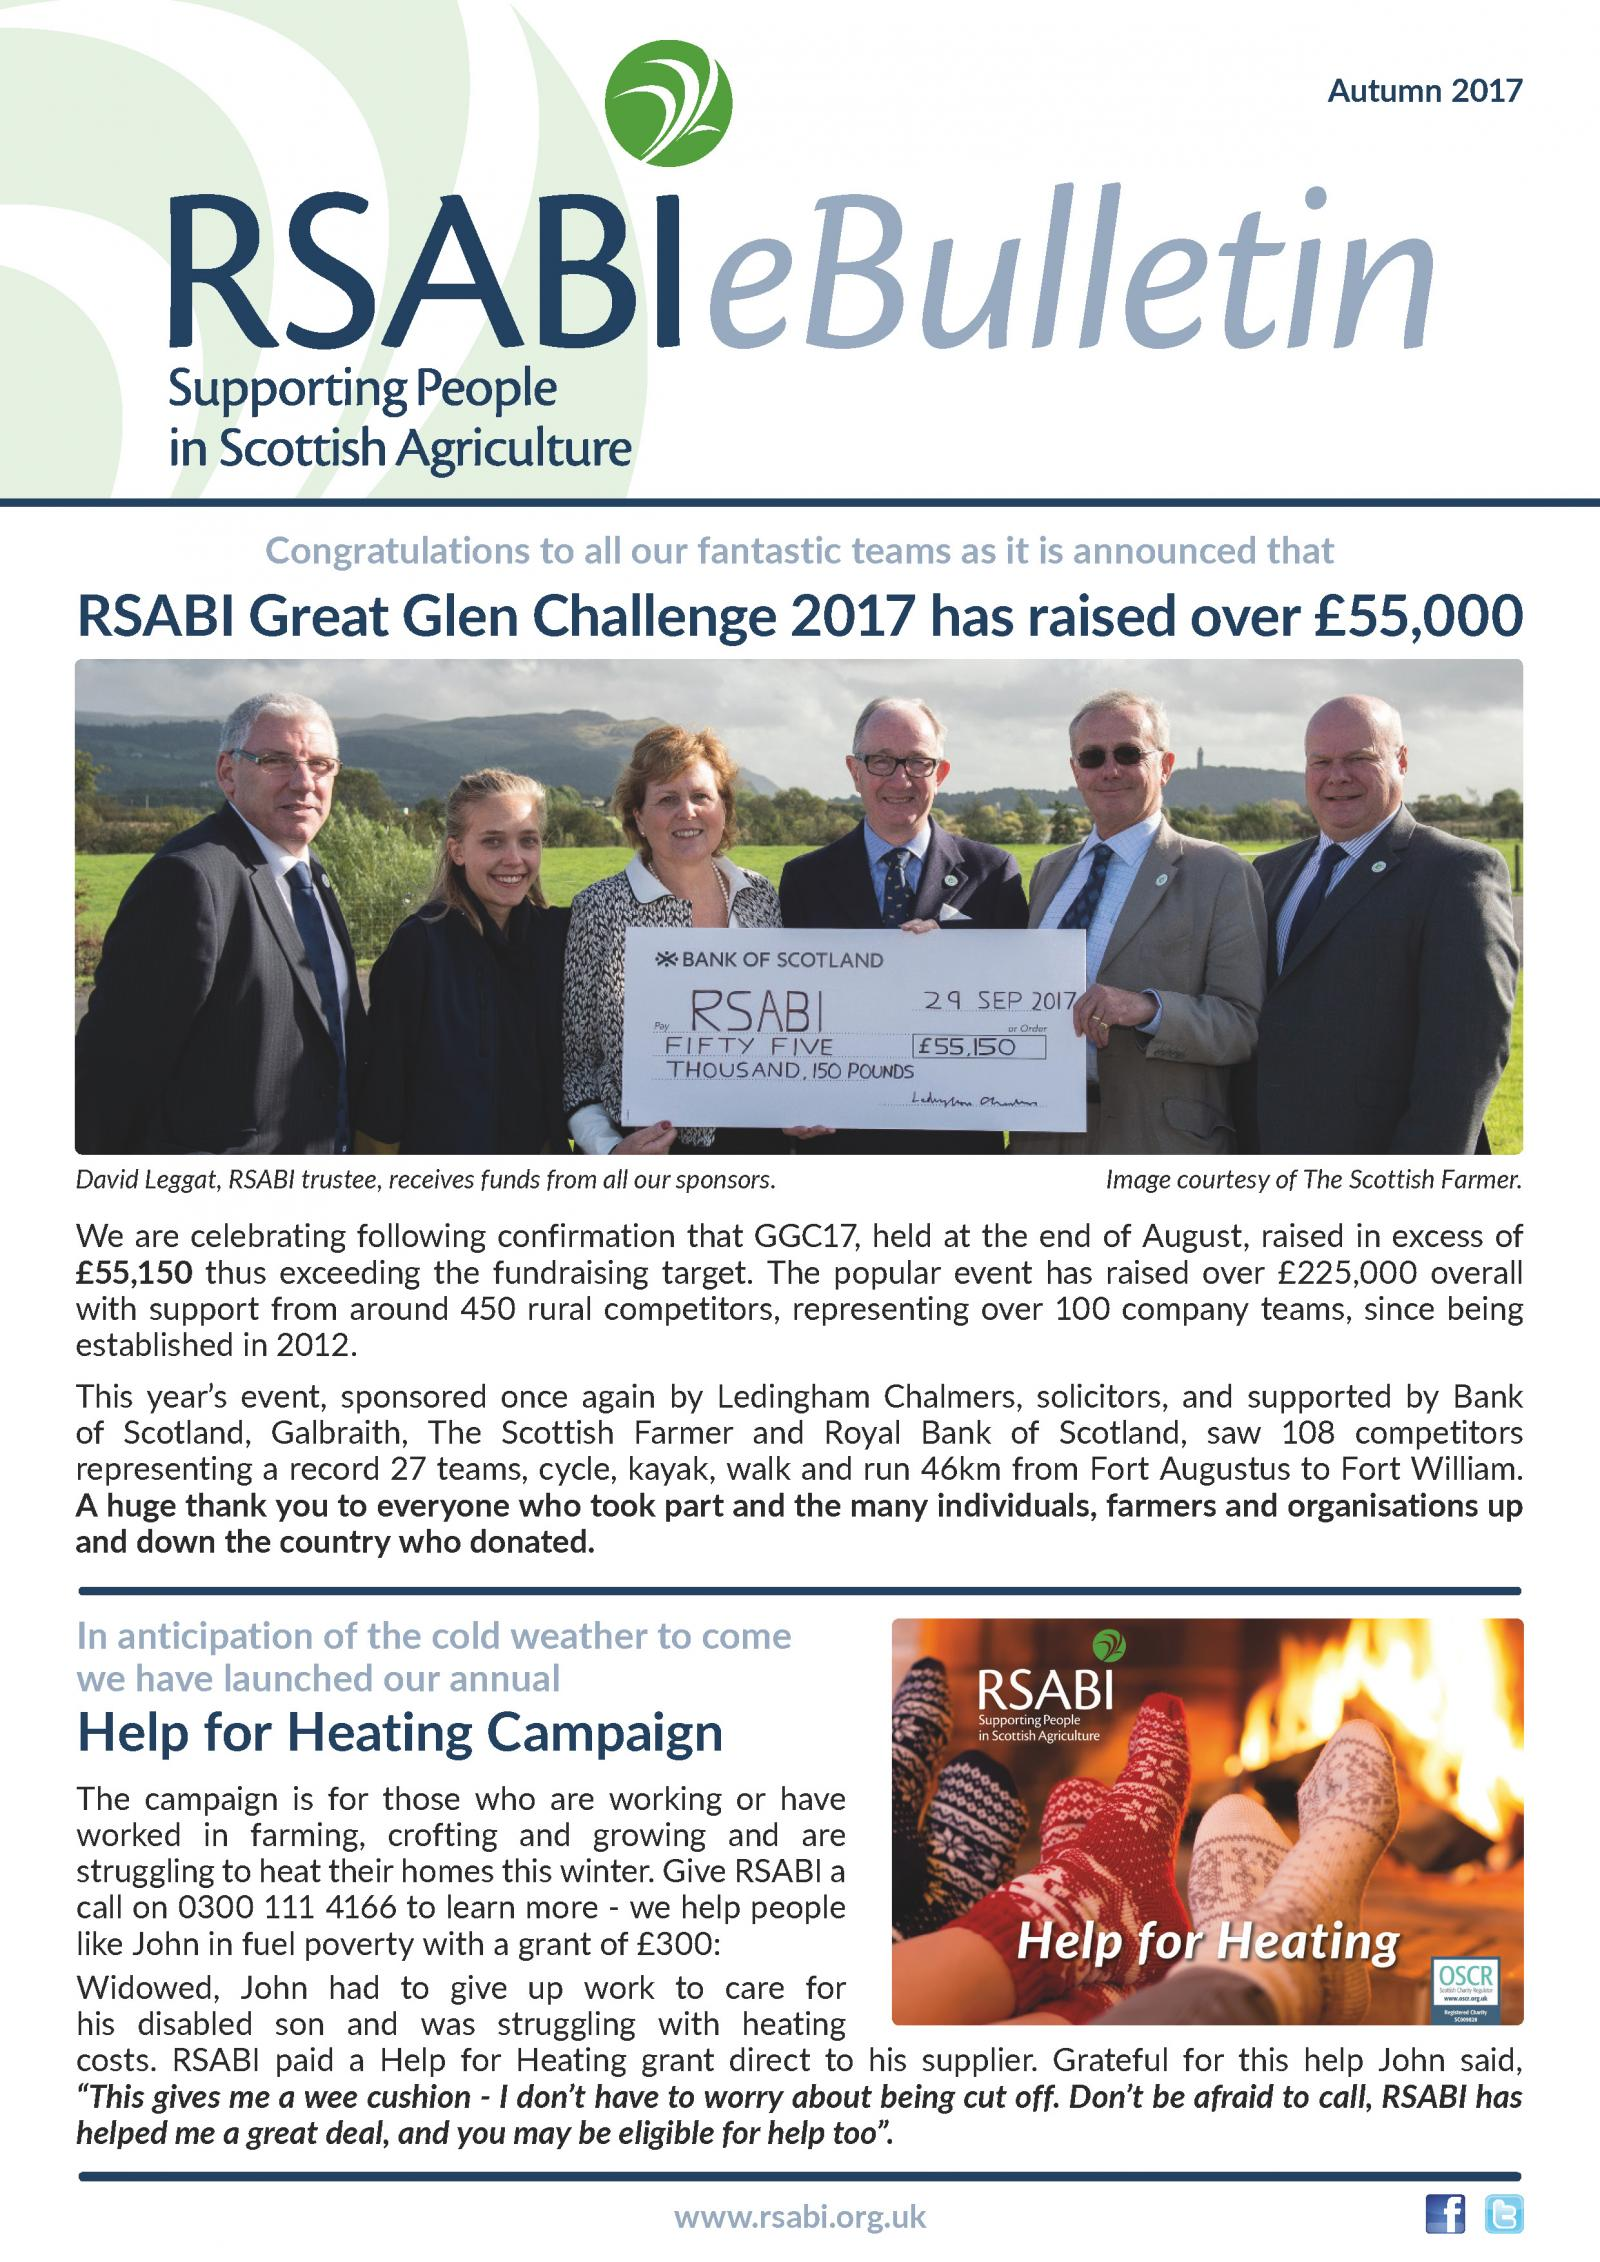 RSABI eBulletin Autumn 17